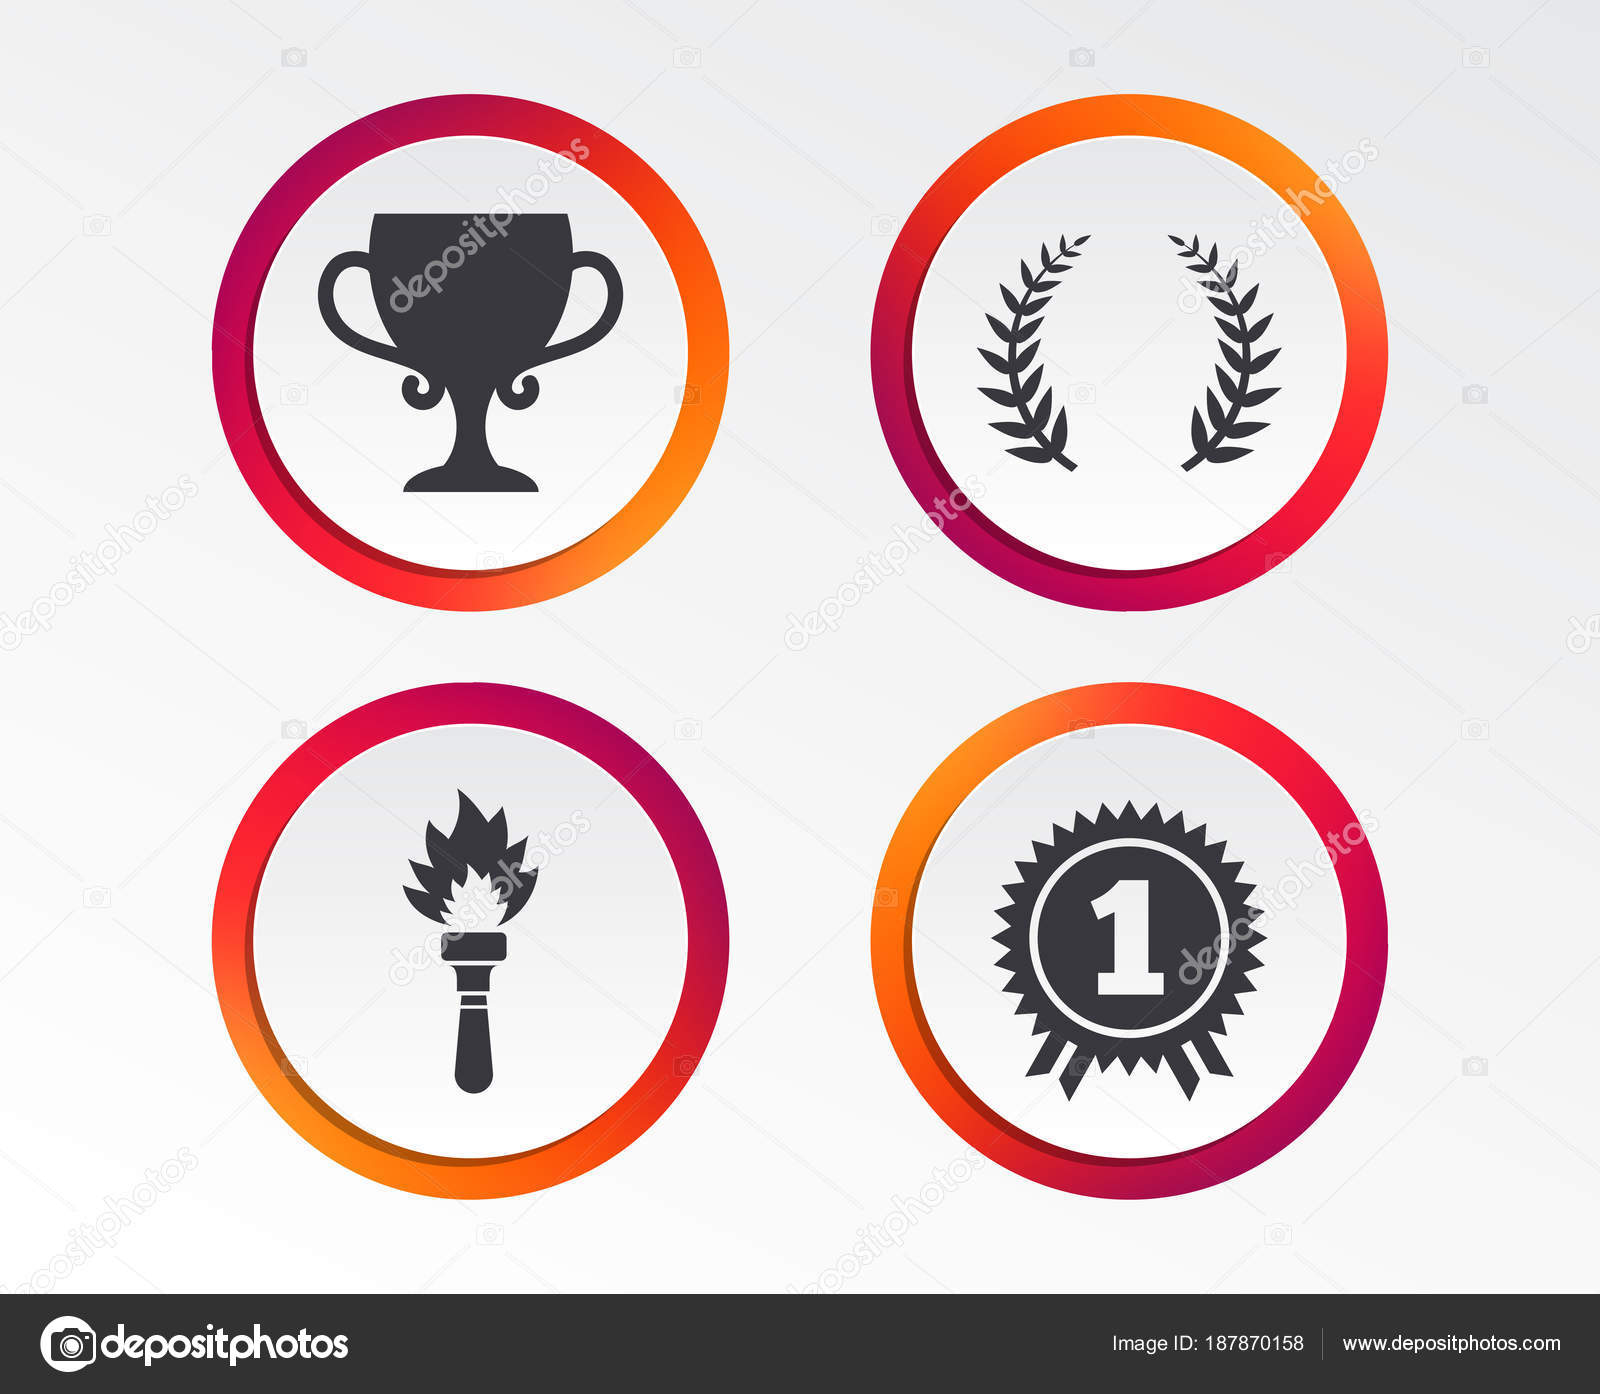 First Place Award Cup Icons. Laurel Wreath Sign. Torch Fire Flame Symbol.  Prize For Winner. Infographic Design Buttons. Circle Templates.